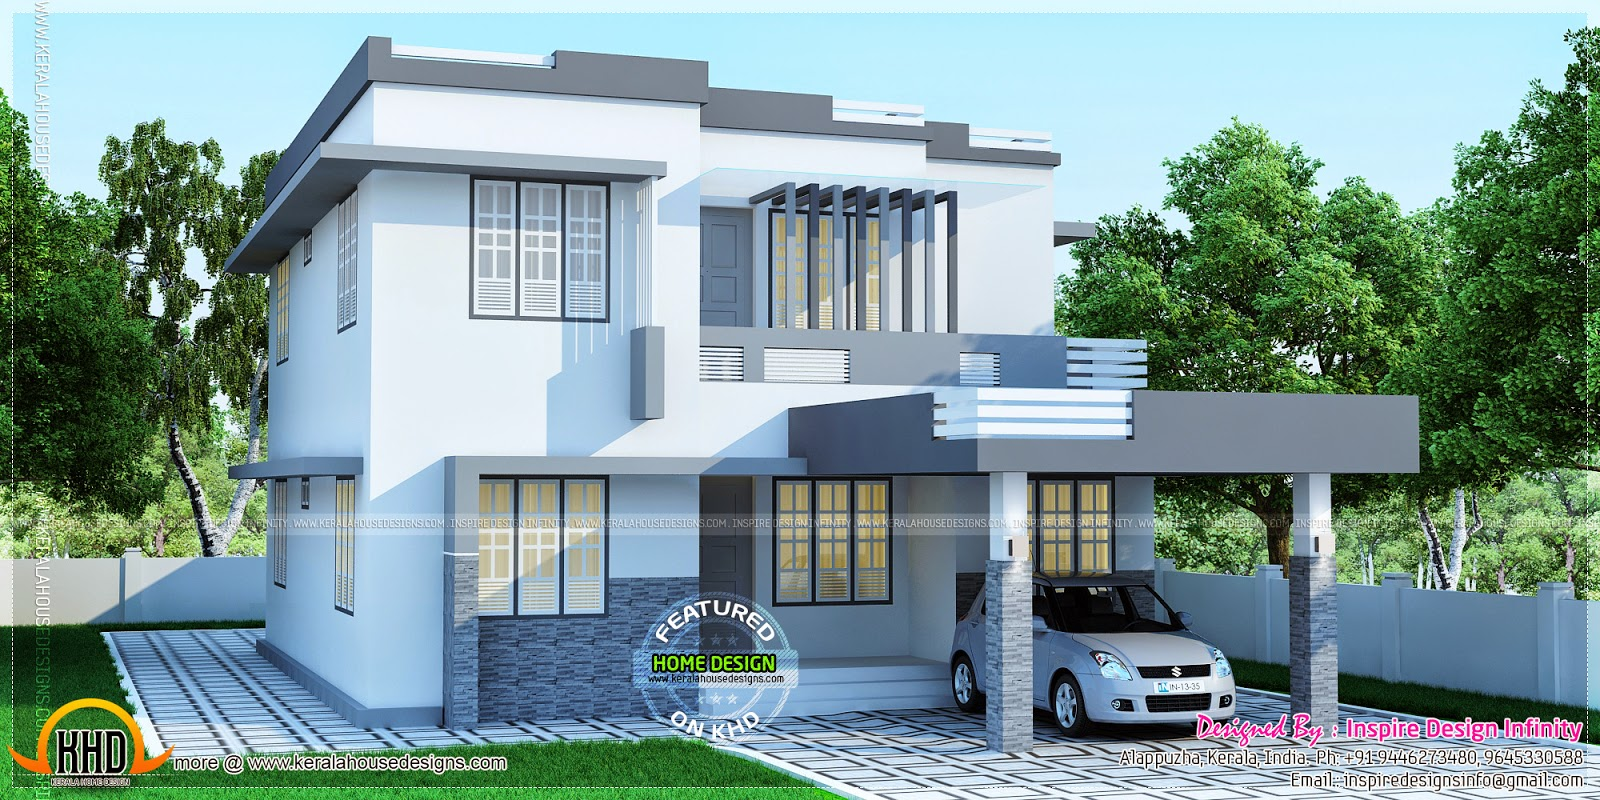 Modern house designs 2014 kerala for Home design 2014